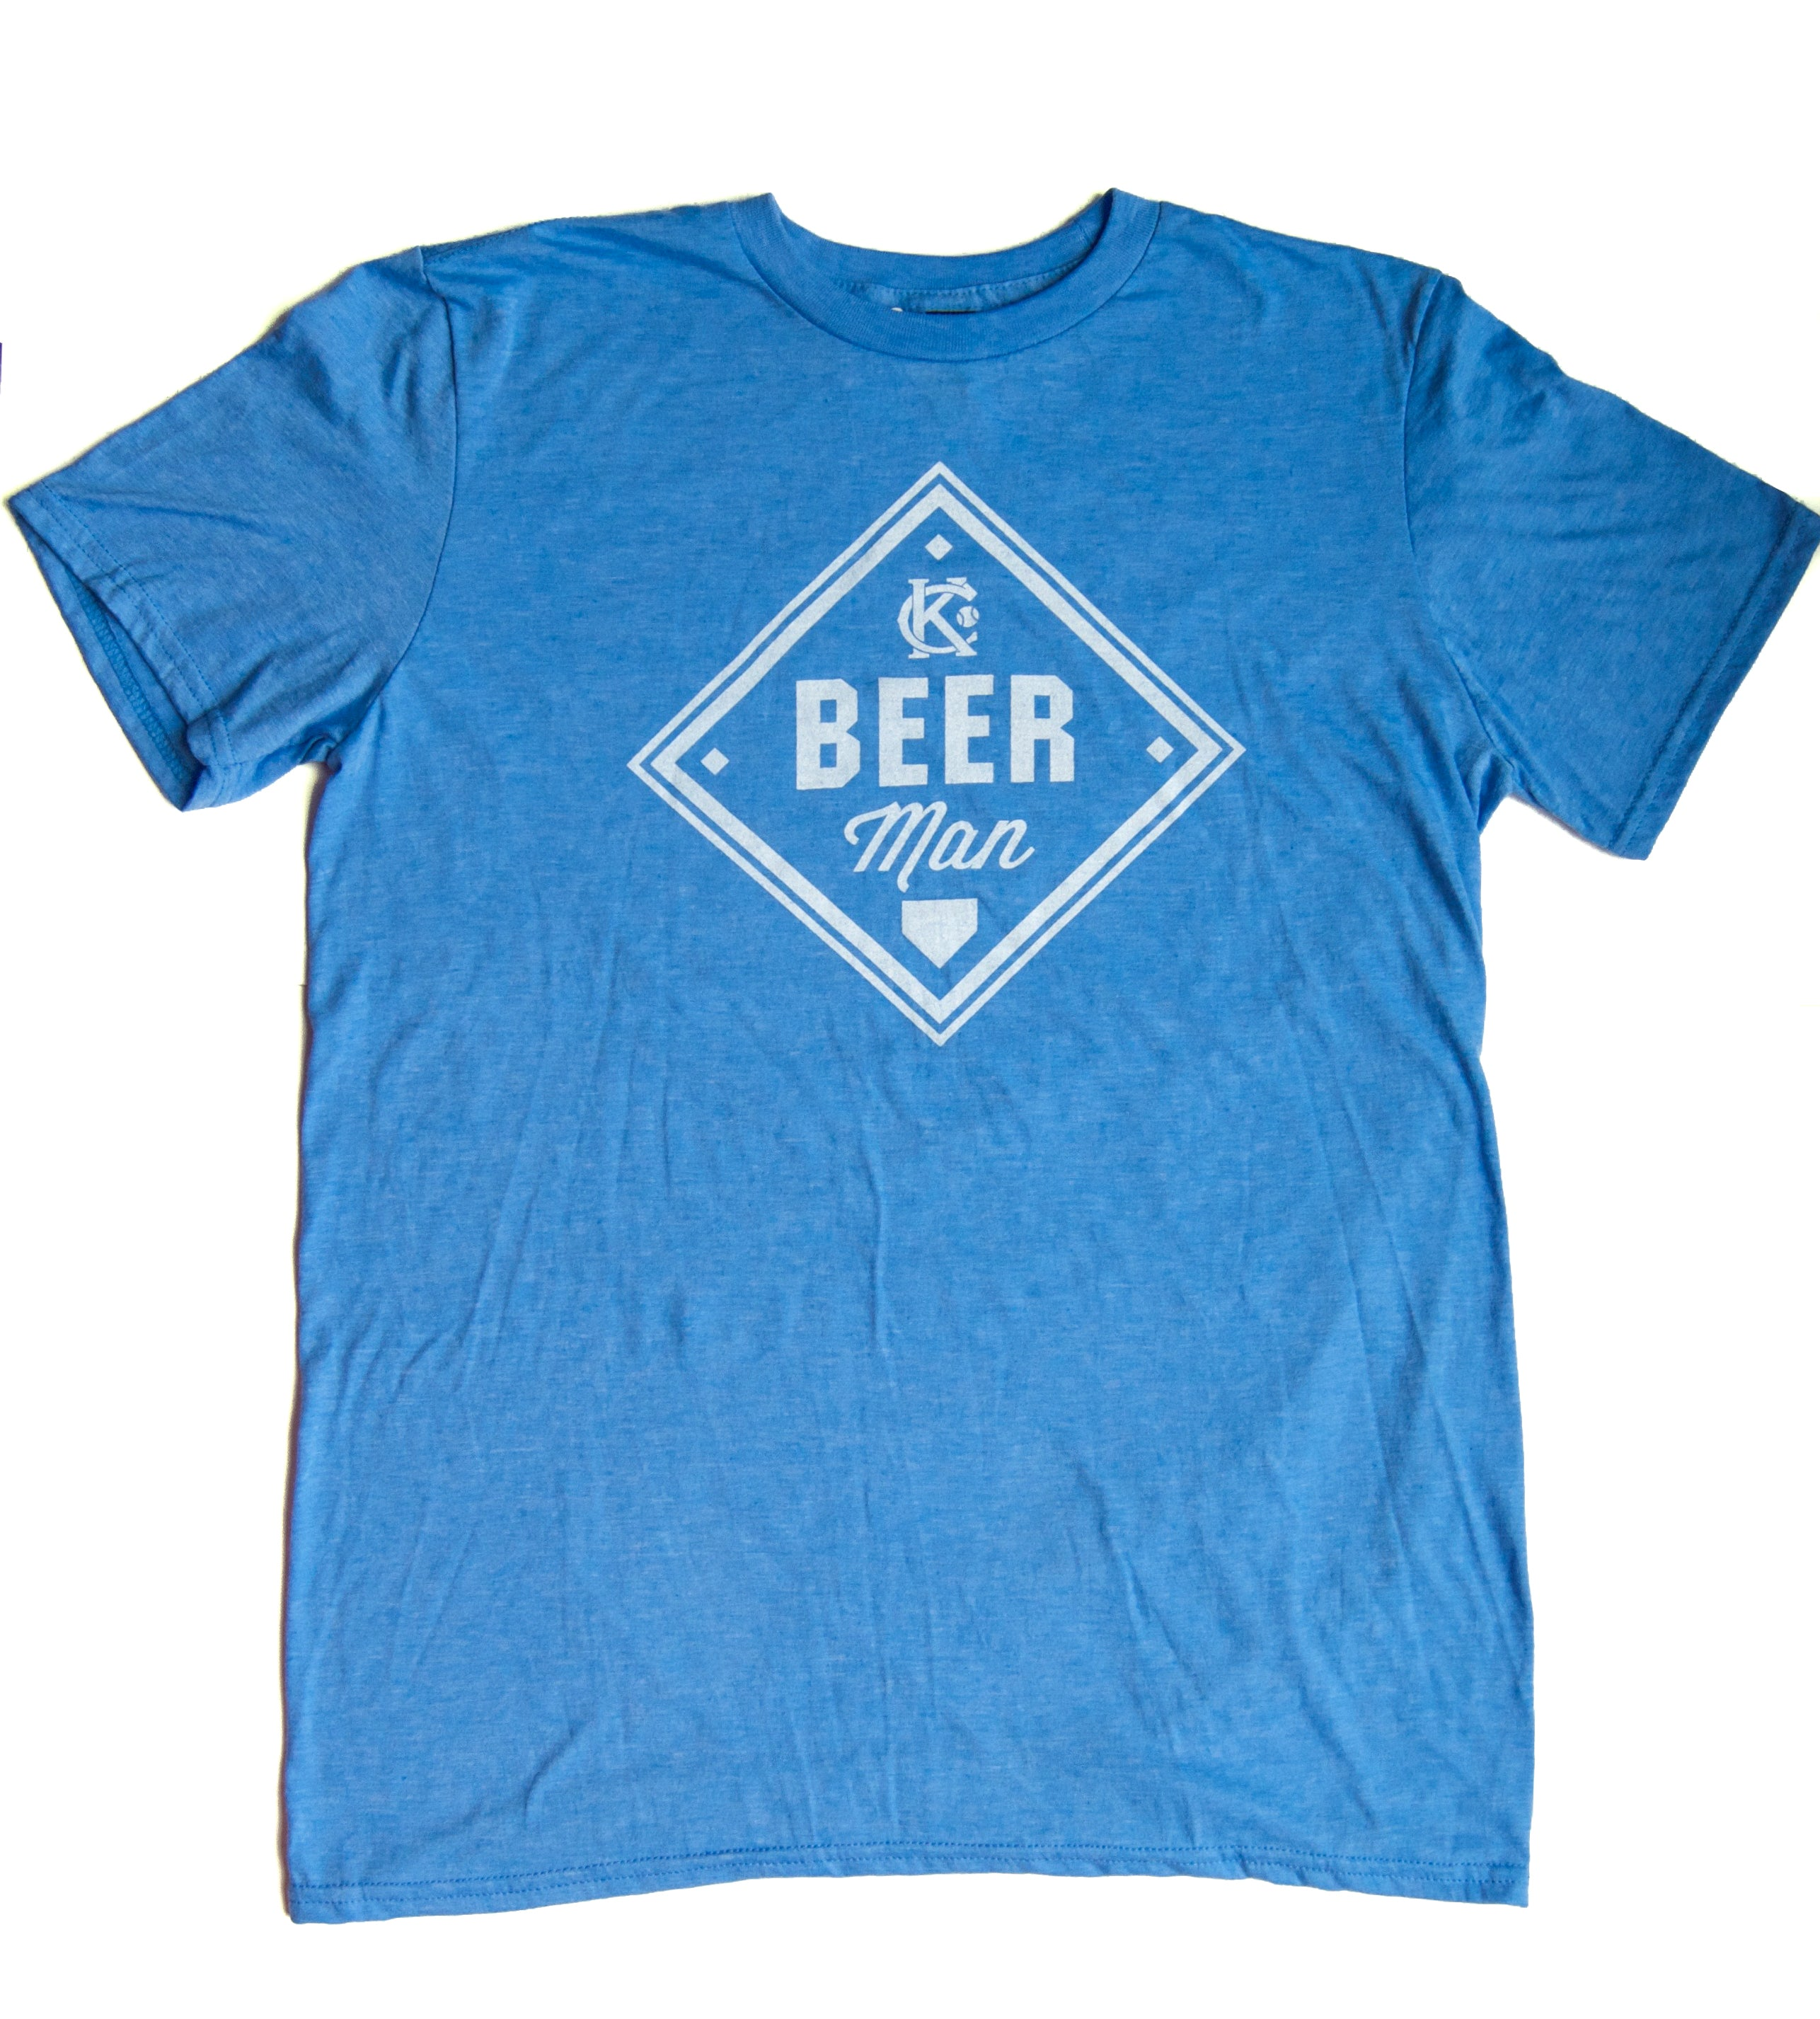 Vintage Kansas City soft style heather blue unisex short sleeve t-shirt featuring the vintage KC logo and a baseball diamond with Beer Man printed in white print across the chest - Dalton Ink